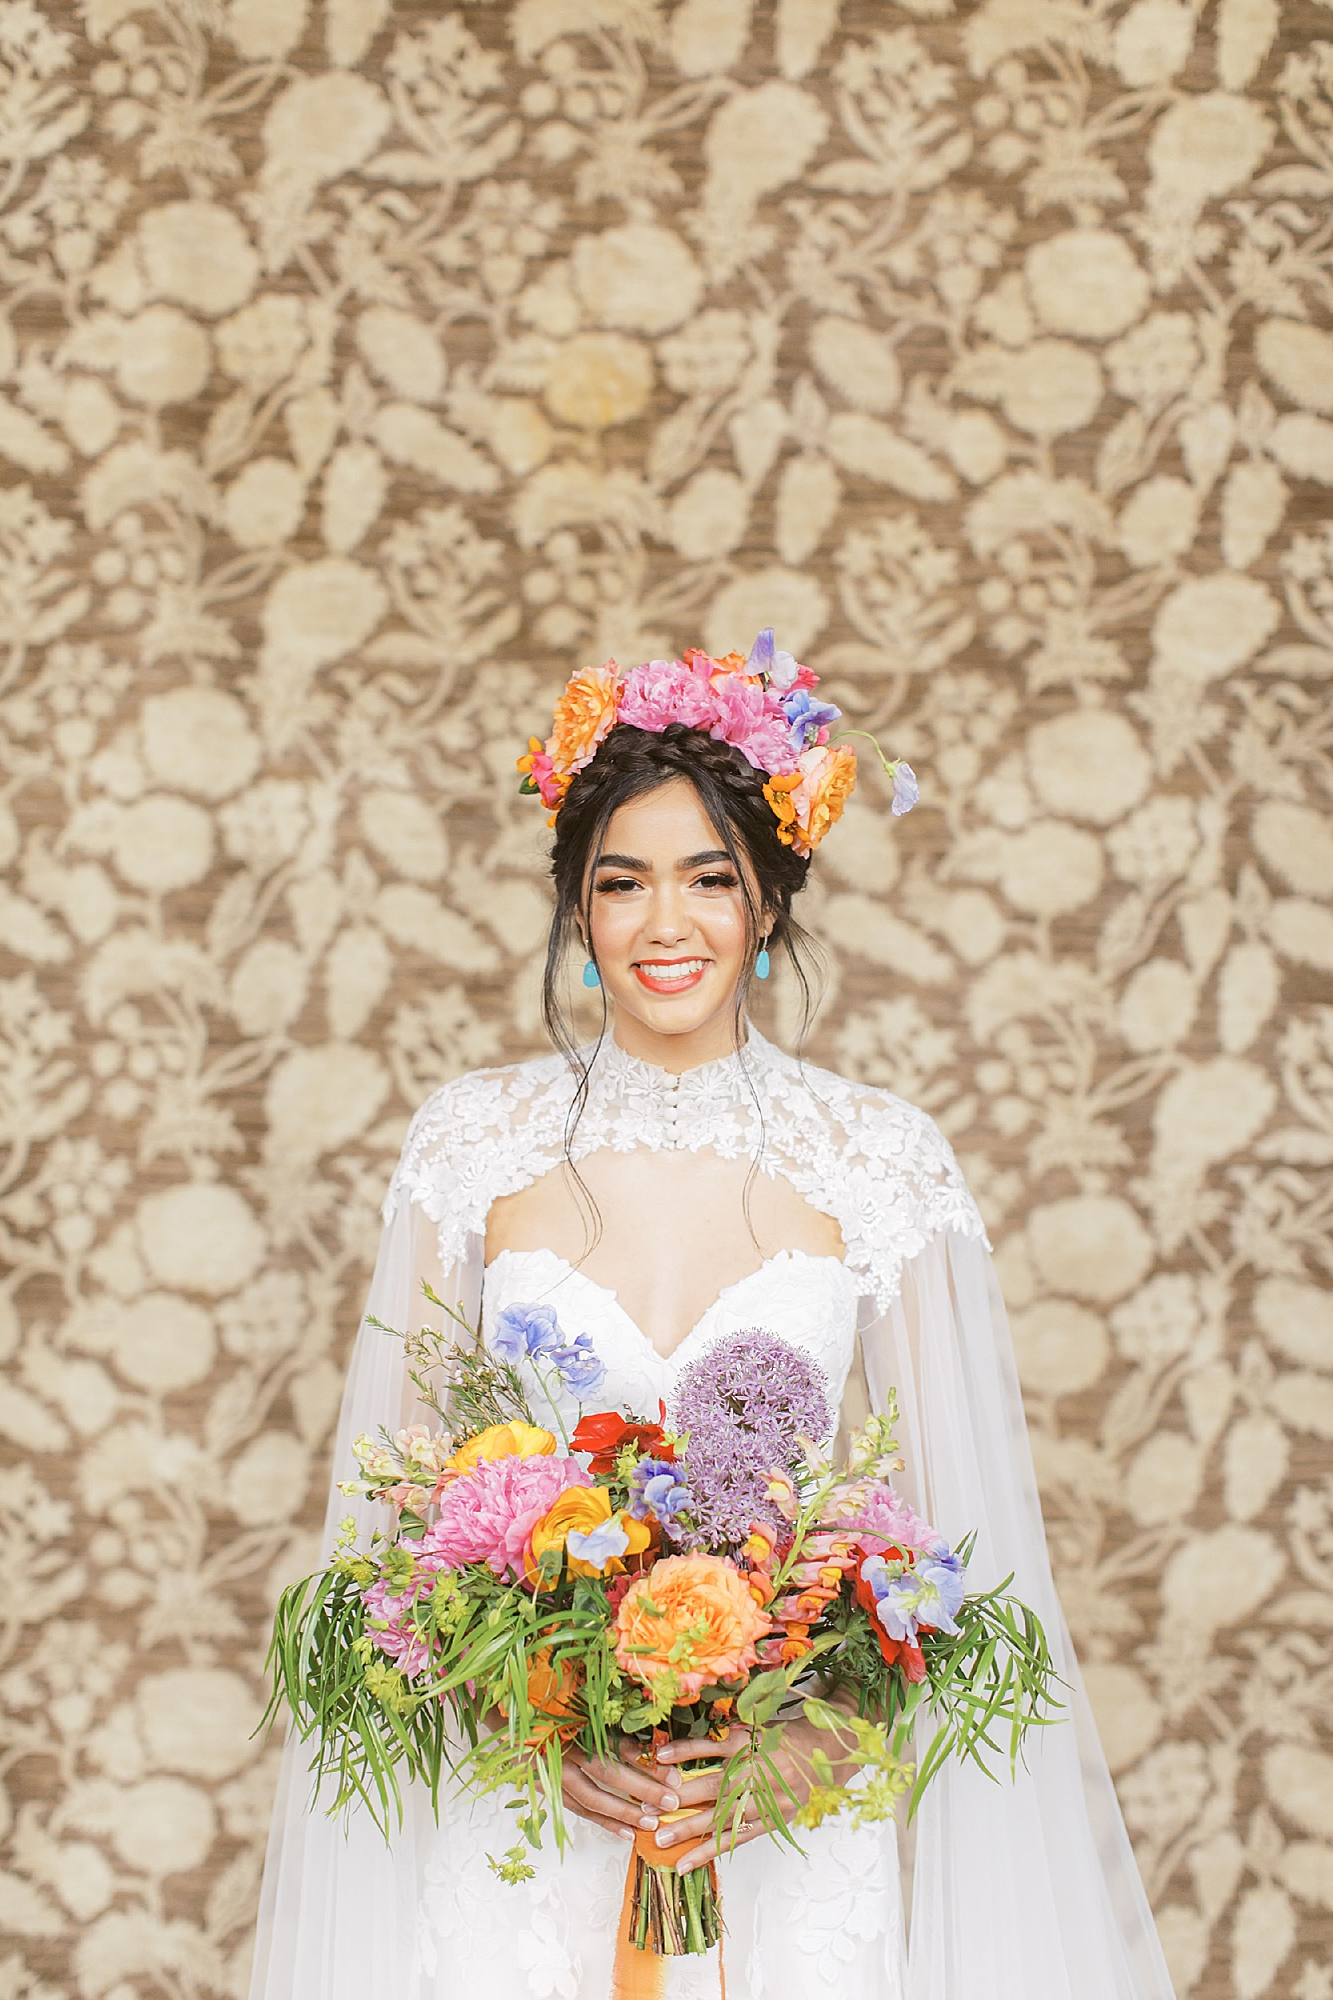 Vibrant and Colorful Frida Kahlo Inspired Wedding Photography by Magdalena Studios 0010